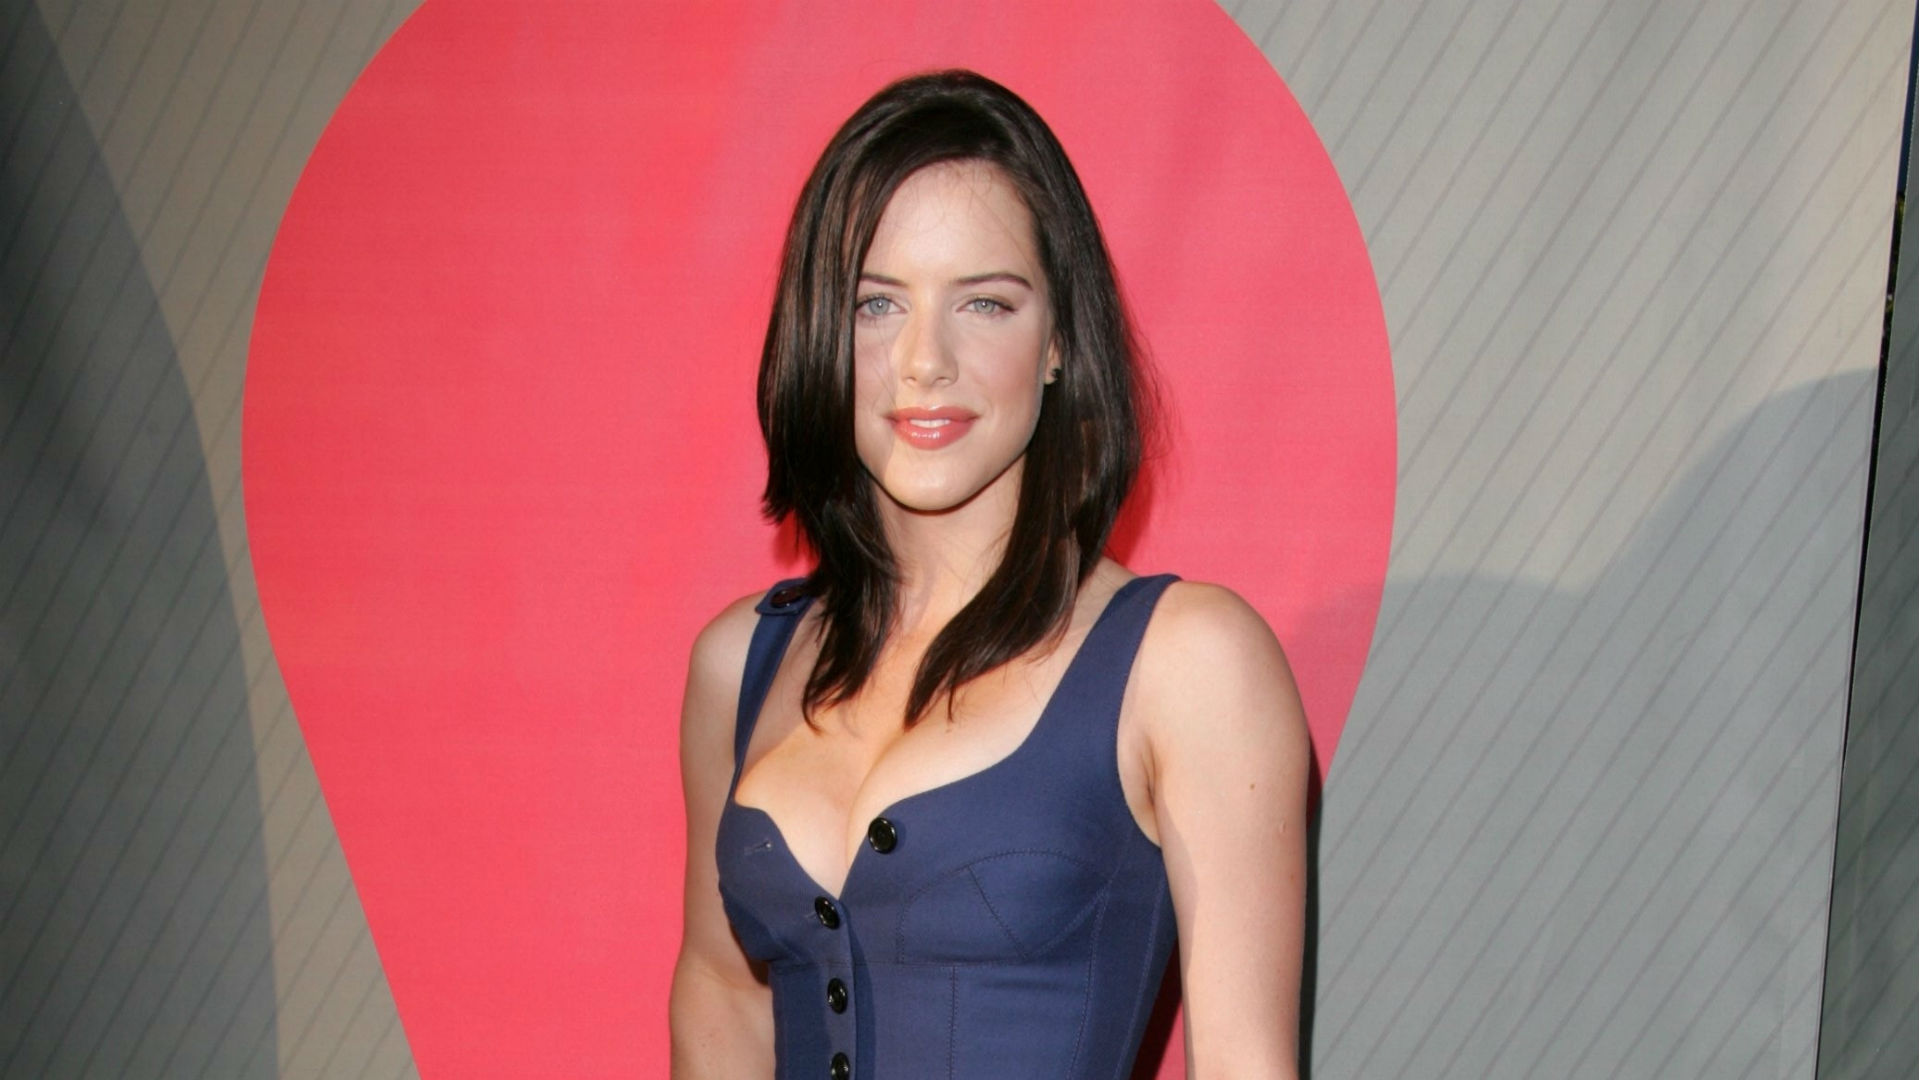 Michelle Ryan Wallpapers Images Photos Pictures Backgrounds